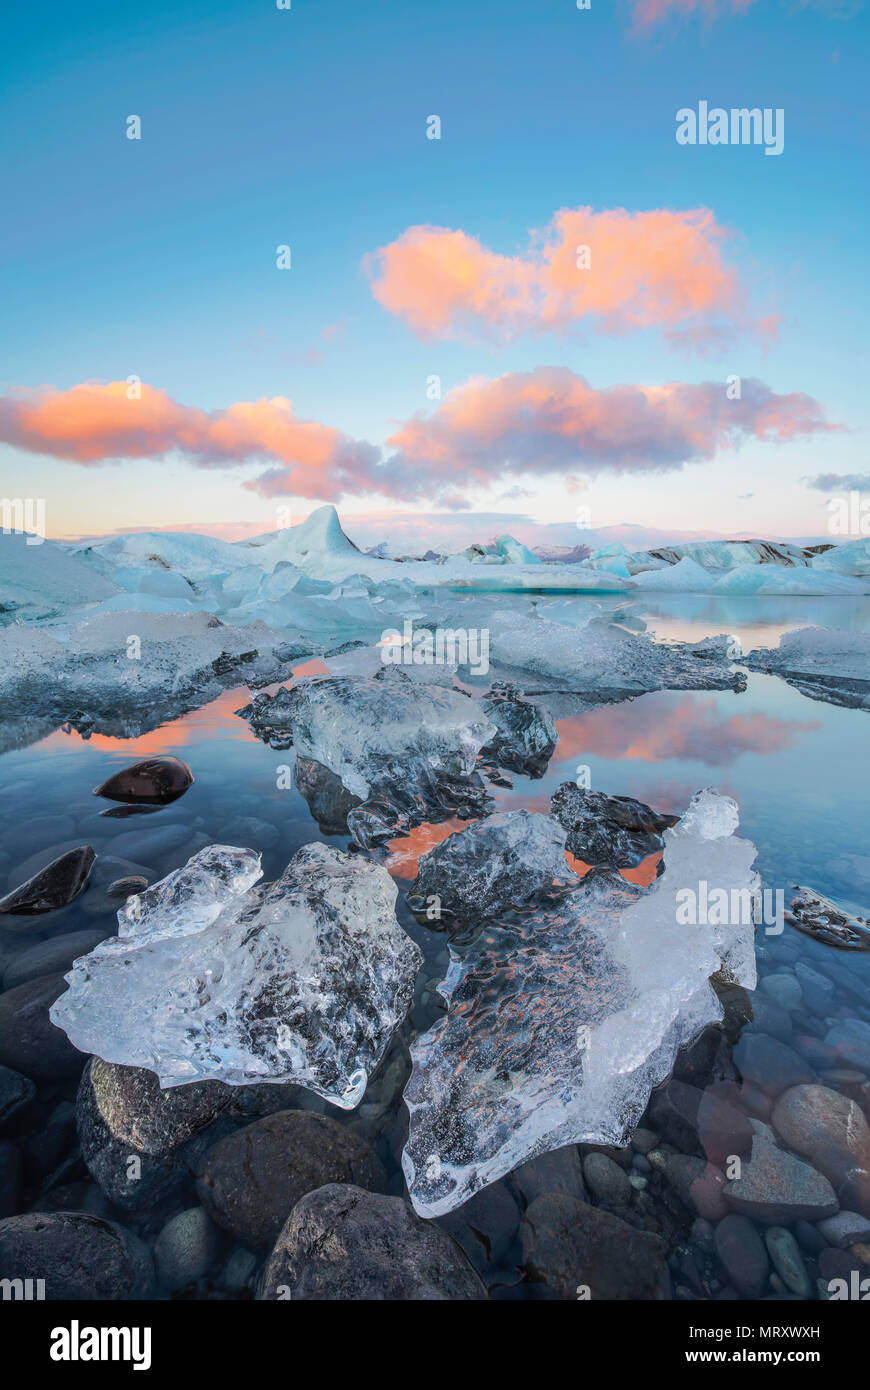 Jokulsarlon, Eastern Iceland, Iceland, Northern Europe. The iconic little icebergs lined in the glacier lagoon during a sunrise - Stock Image